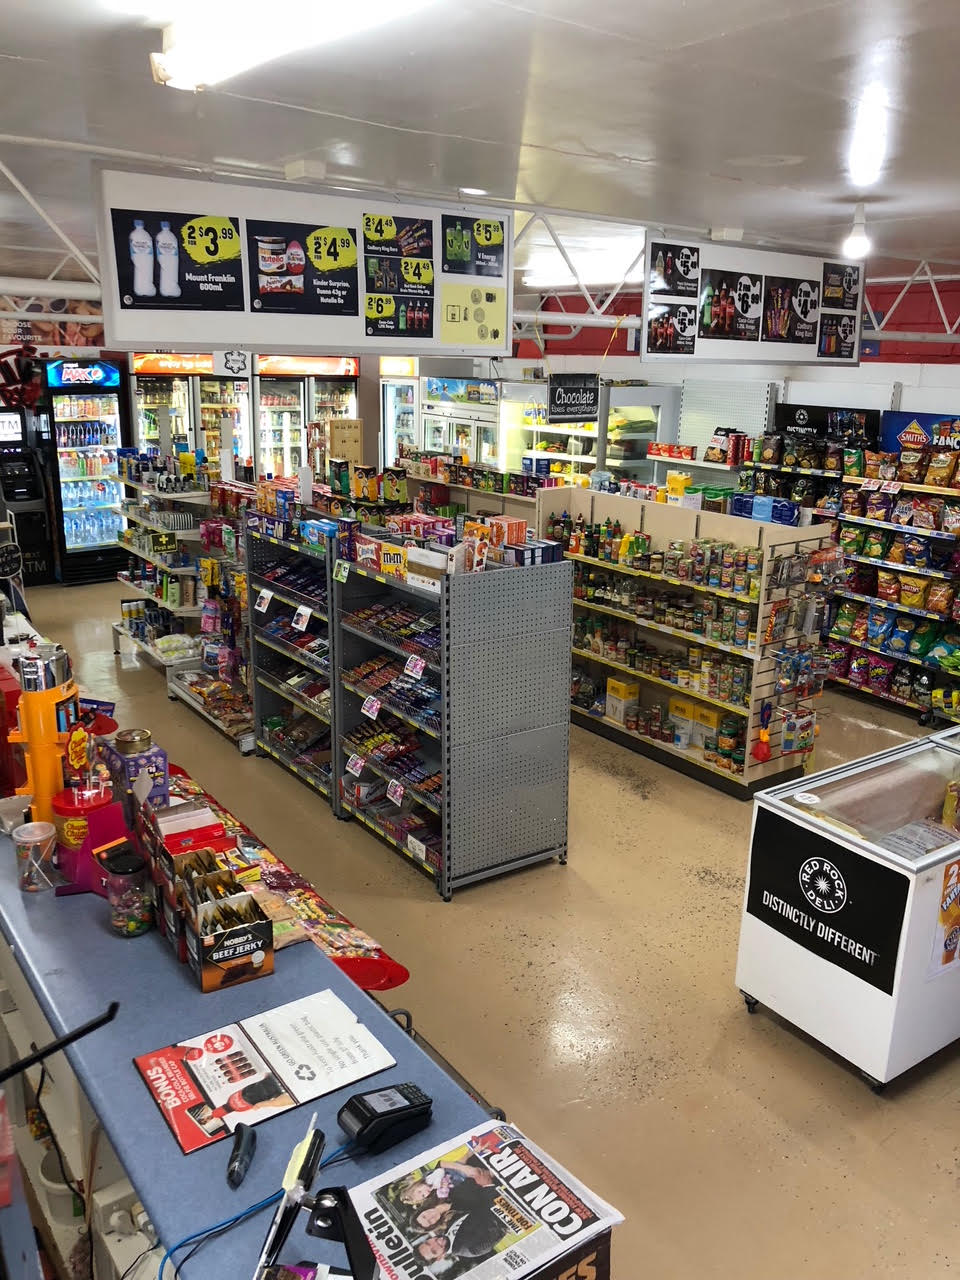 OM Convenience | convenience store | 1/49 Railway Ave, Railway Estate QLD 4810, Australia | 0435063445 OR +61 435 063 445